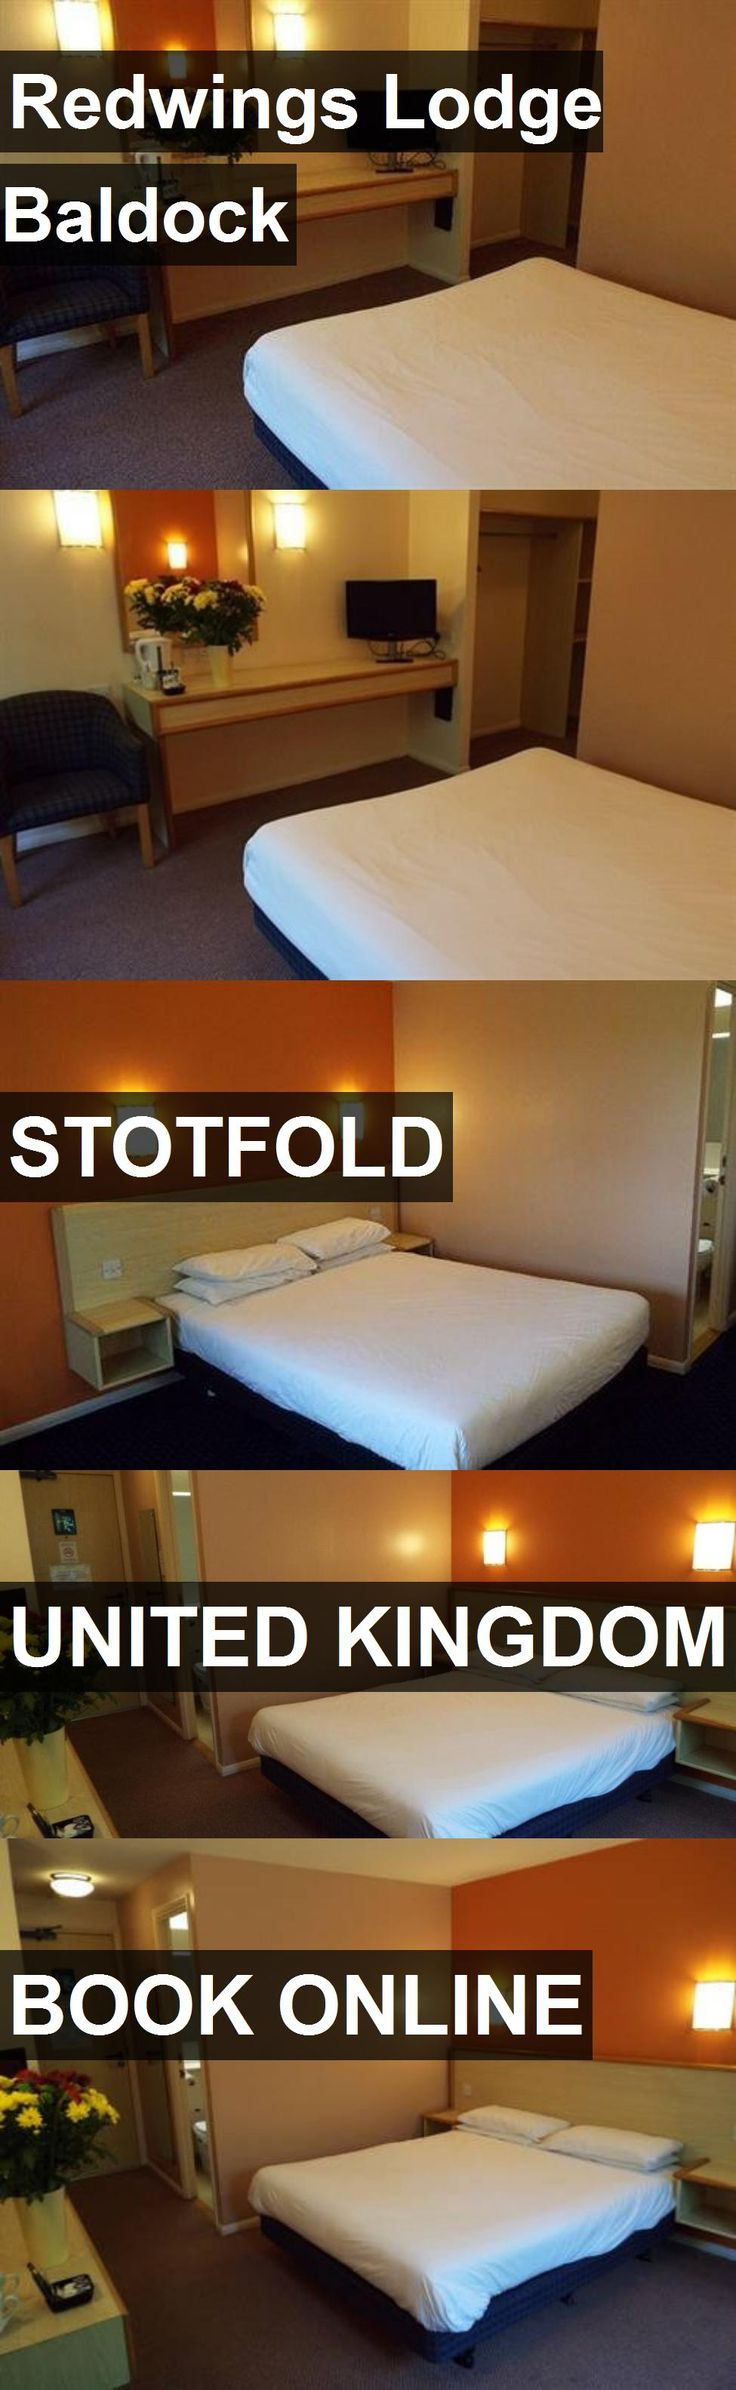 Hotel Redwings Lodge Baldock in Stotfold, United Kingdom. For more information, photos, reviews and best prices please follow the link. #UnitedKingdom #Stotfold #travel #vacation #hotel